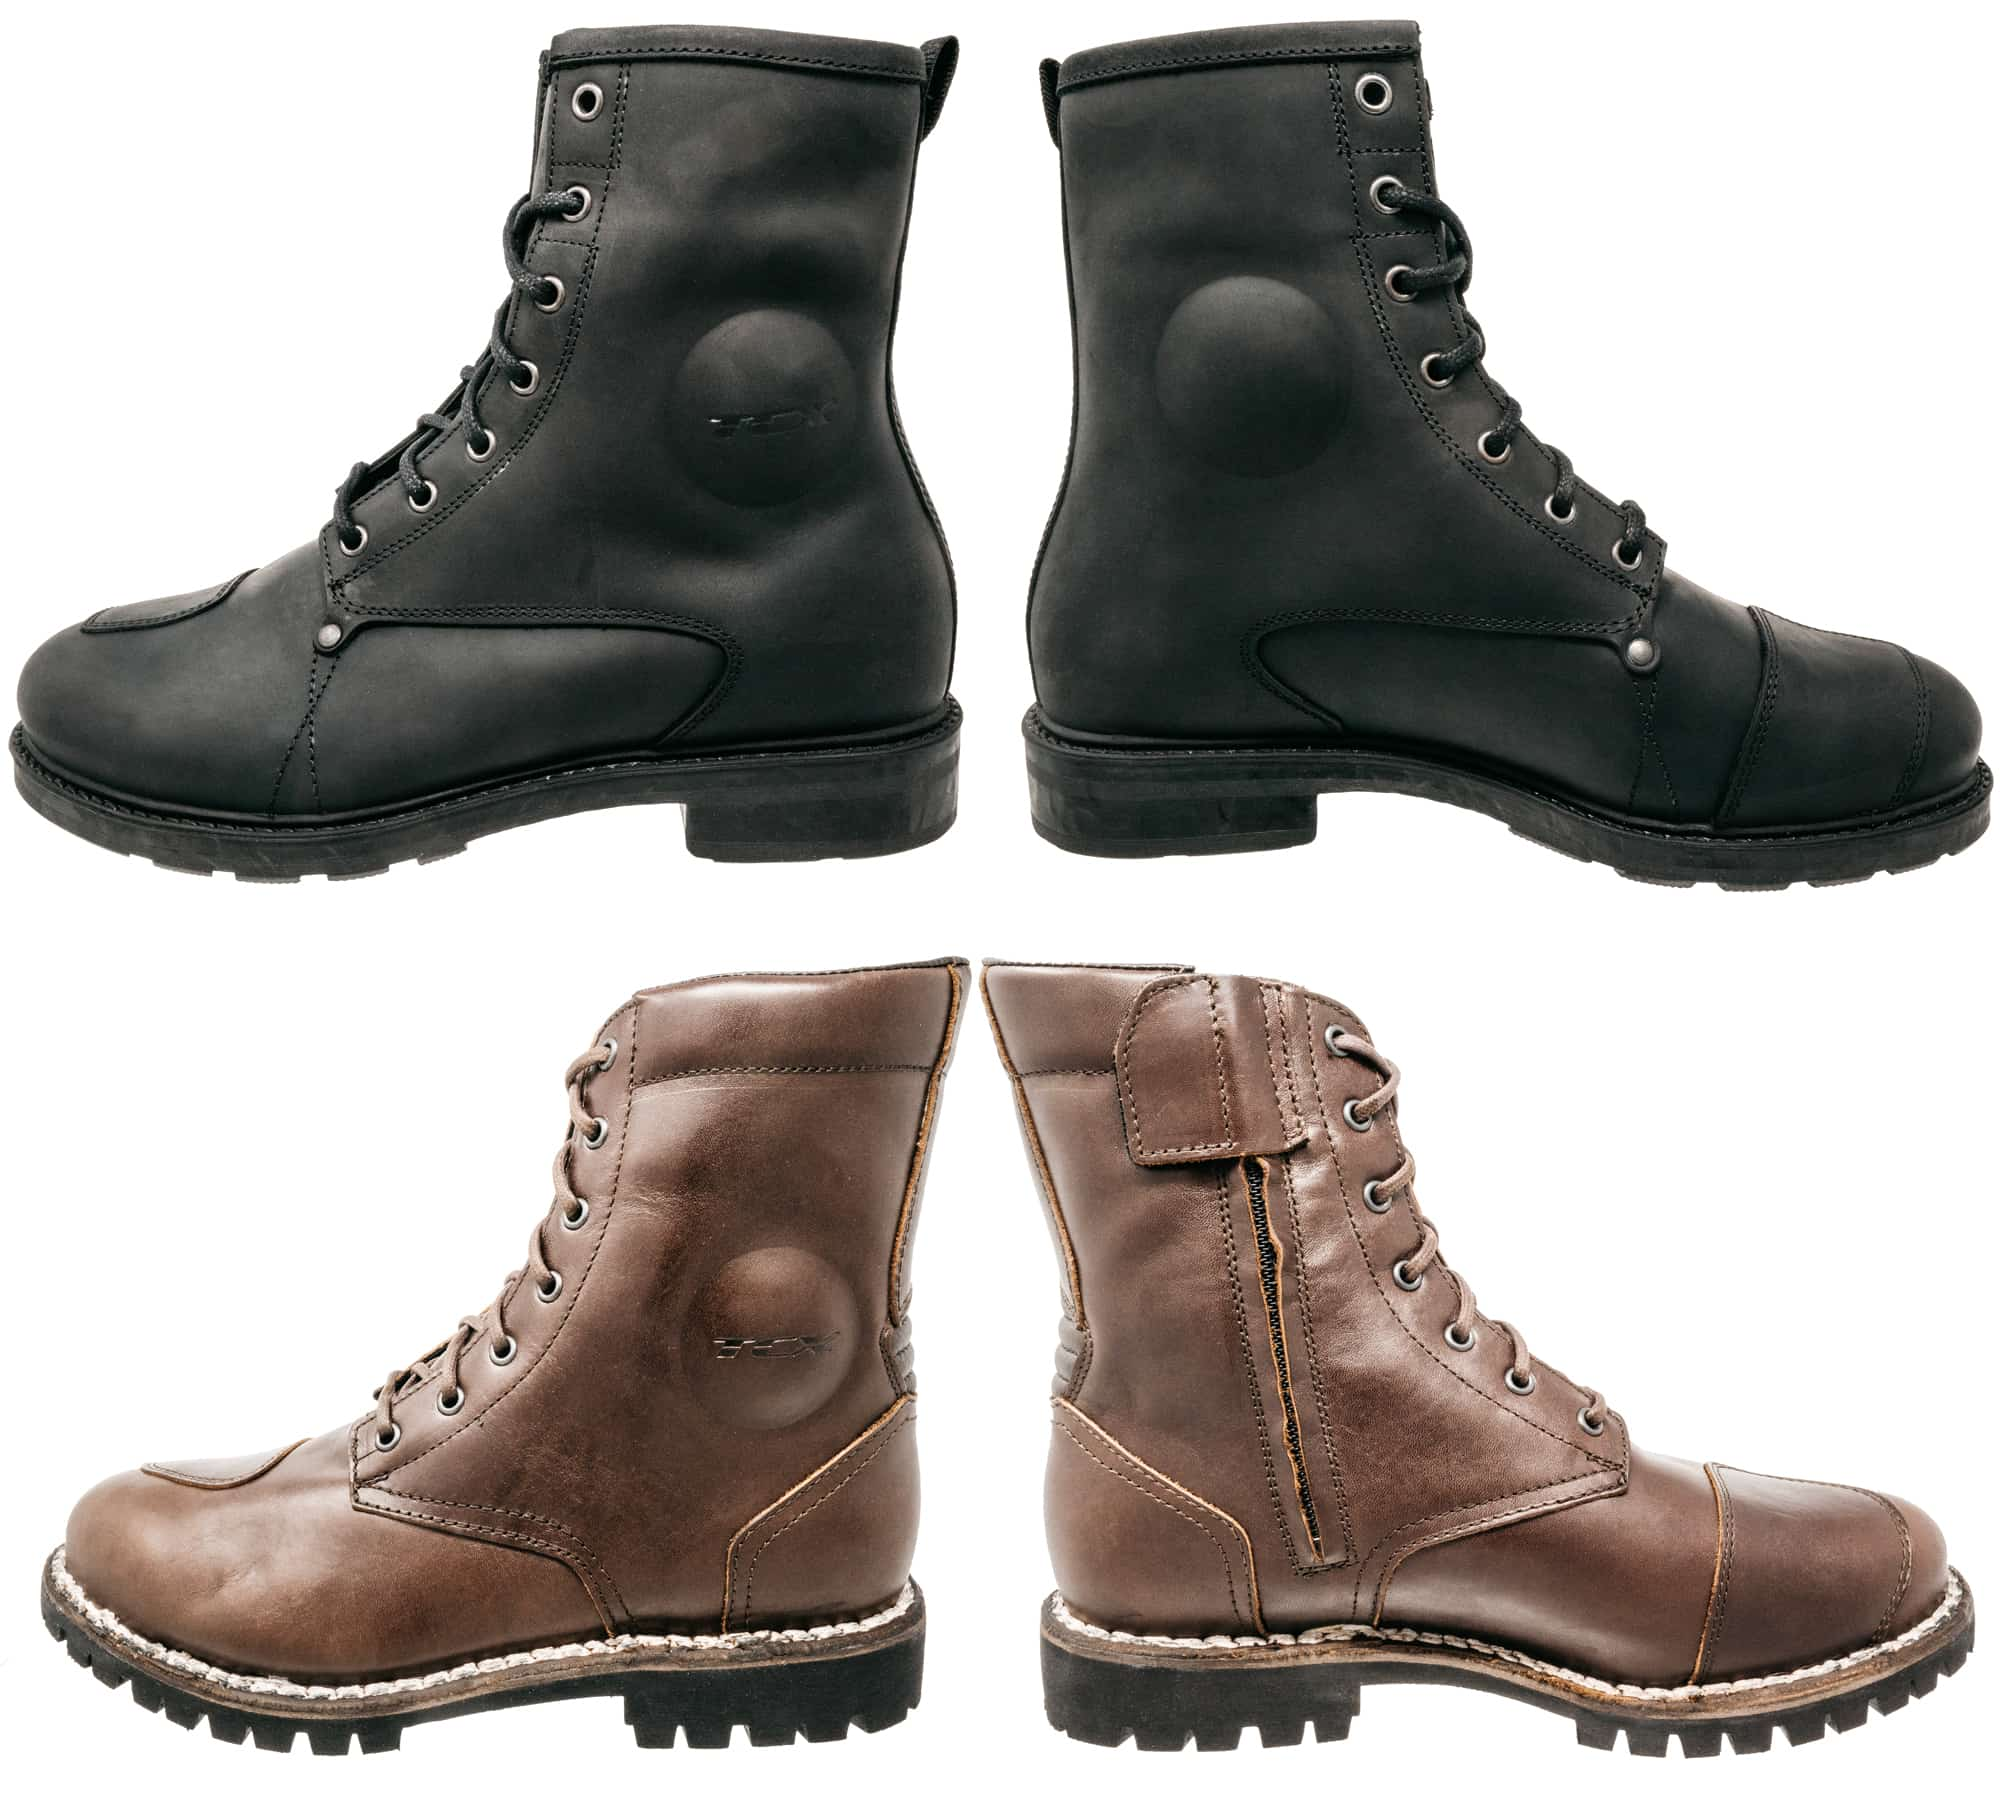 Casual Motorcycle Boots The Top 10 Styles This Season Inspire At